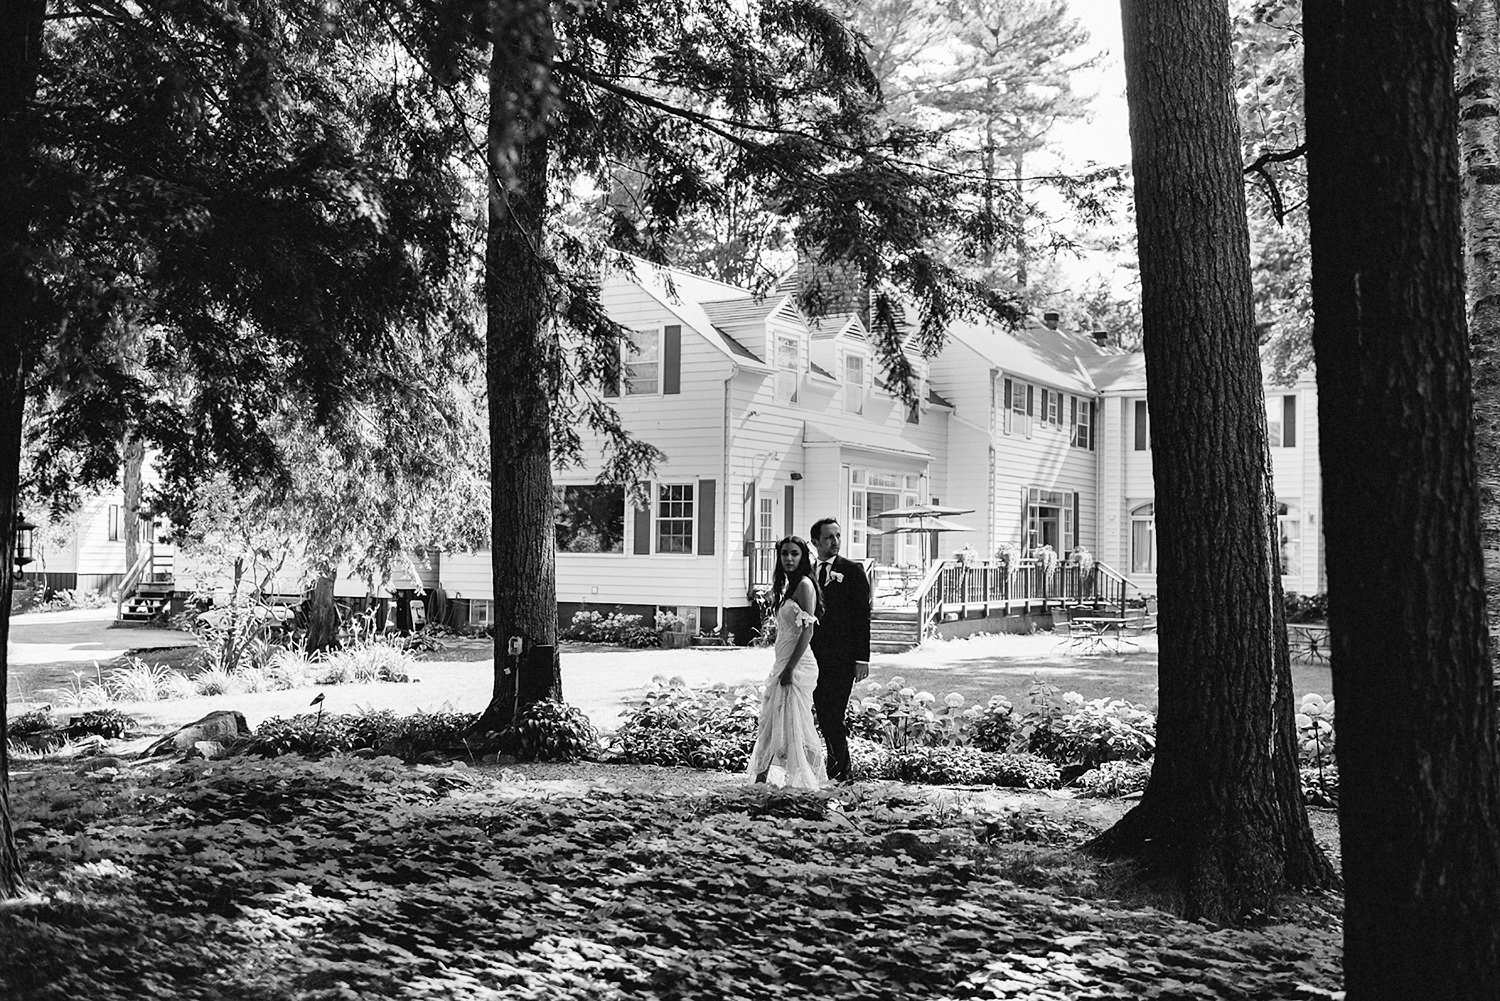 Muskoka-Cottage-Wedding-Photography-Photographer_Photojournalistic-Documentary-Wedding-Photography_Vintage-Bride-Lovers-Land-Dress_Rue-Des-Seins_Candid-Bride-and-Groom.jpg